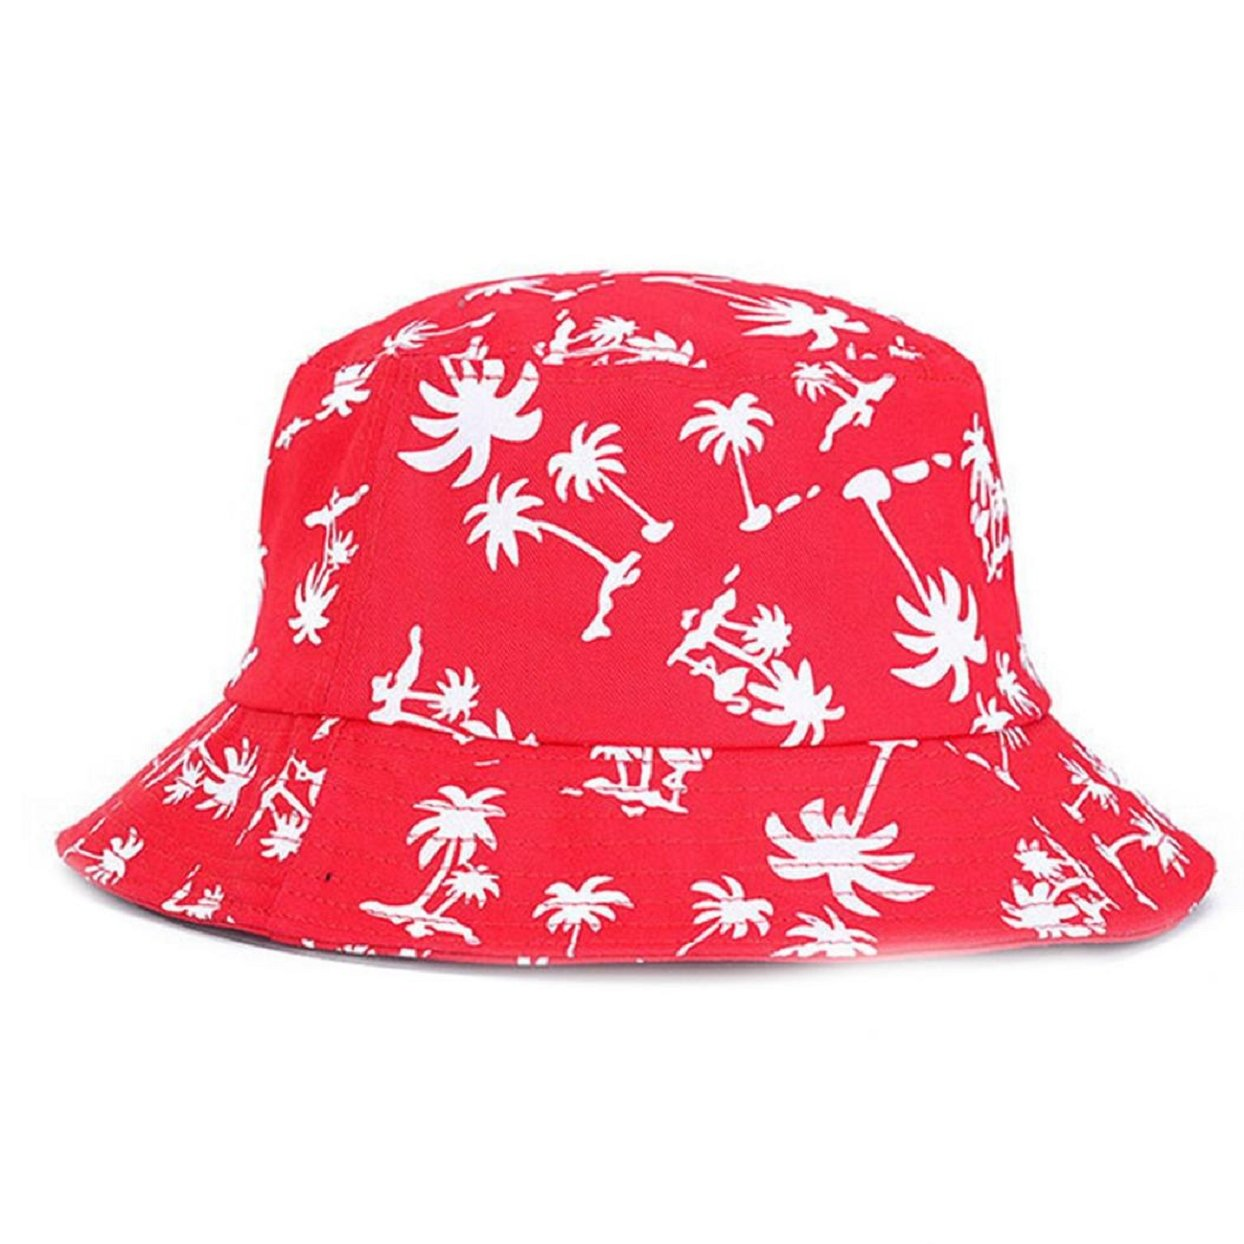 TONSEE Fashion Graffiti Flat Bucket Hat with Coconut Tree Pattern Outdoor Hat TONSEE_A2415